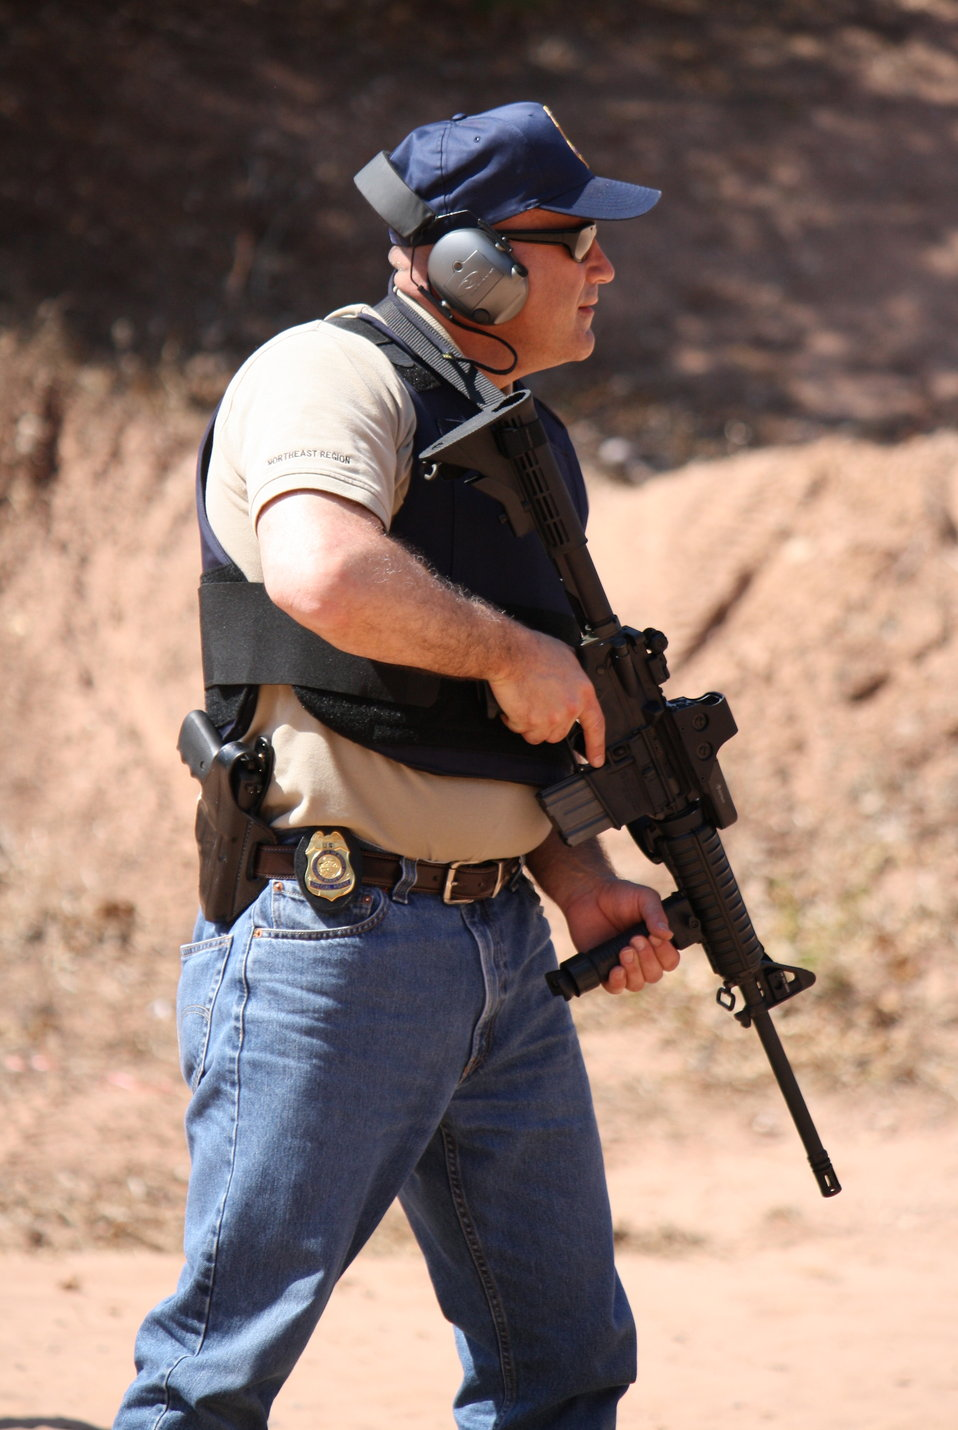 Special Agent in Charge of the Northeast Office of Law Enforcement, Sal Amato